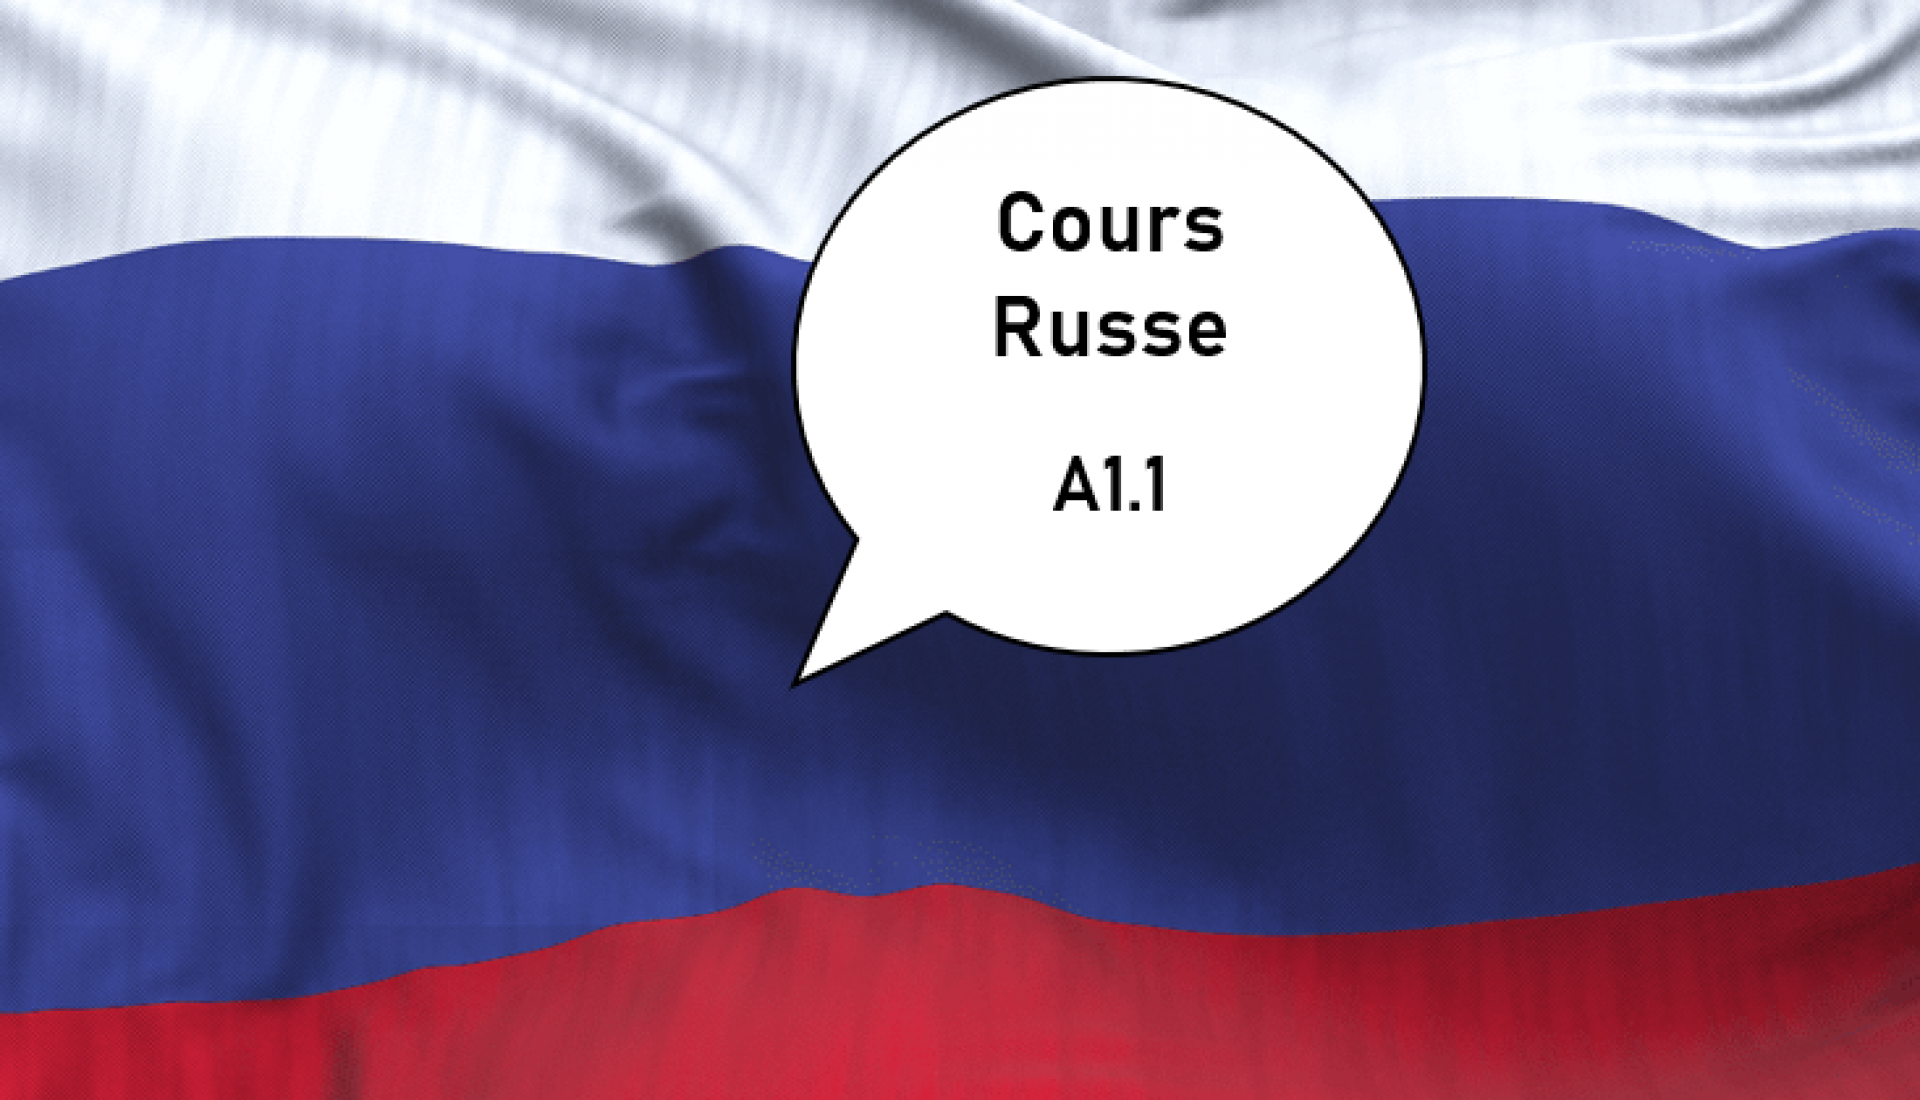 Russe A1.1